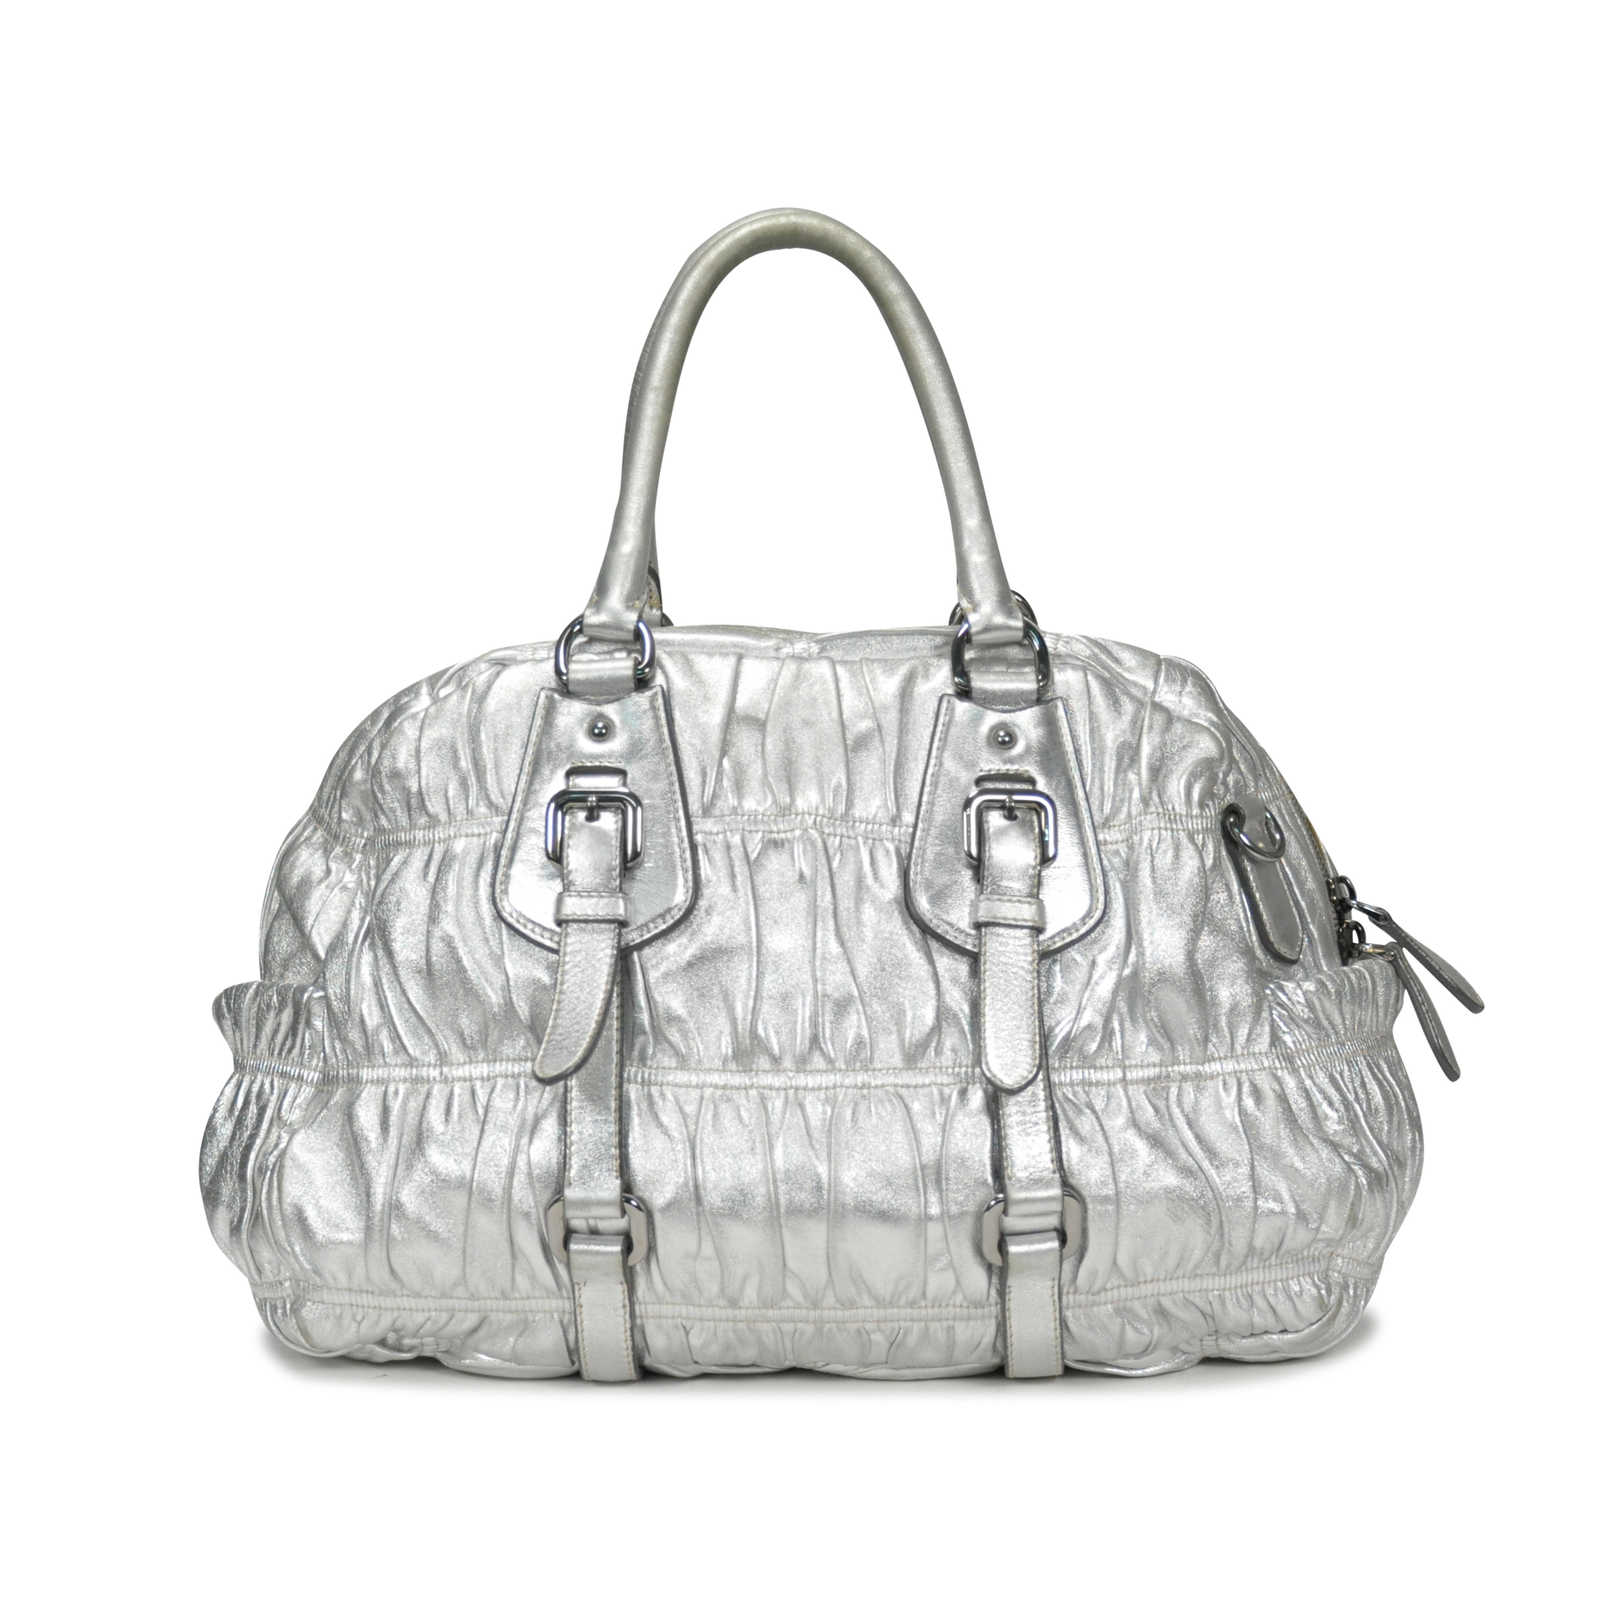 2efb44881214d5 ... Authentic Second Hand Prada Nappa Leather Gaufre Bauletto  (PSS-053-00017) ...